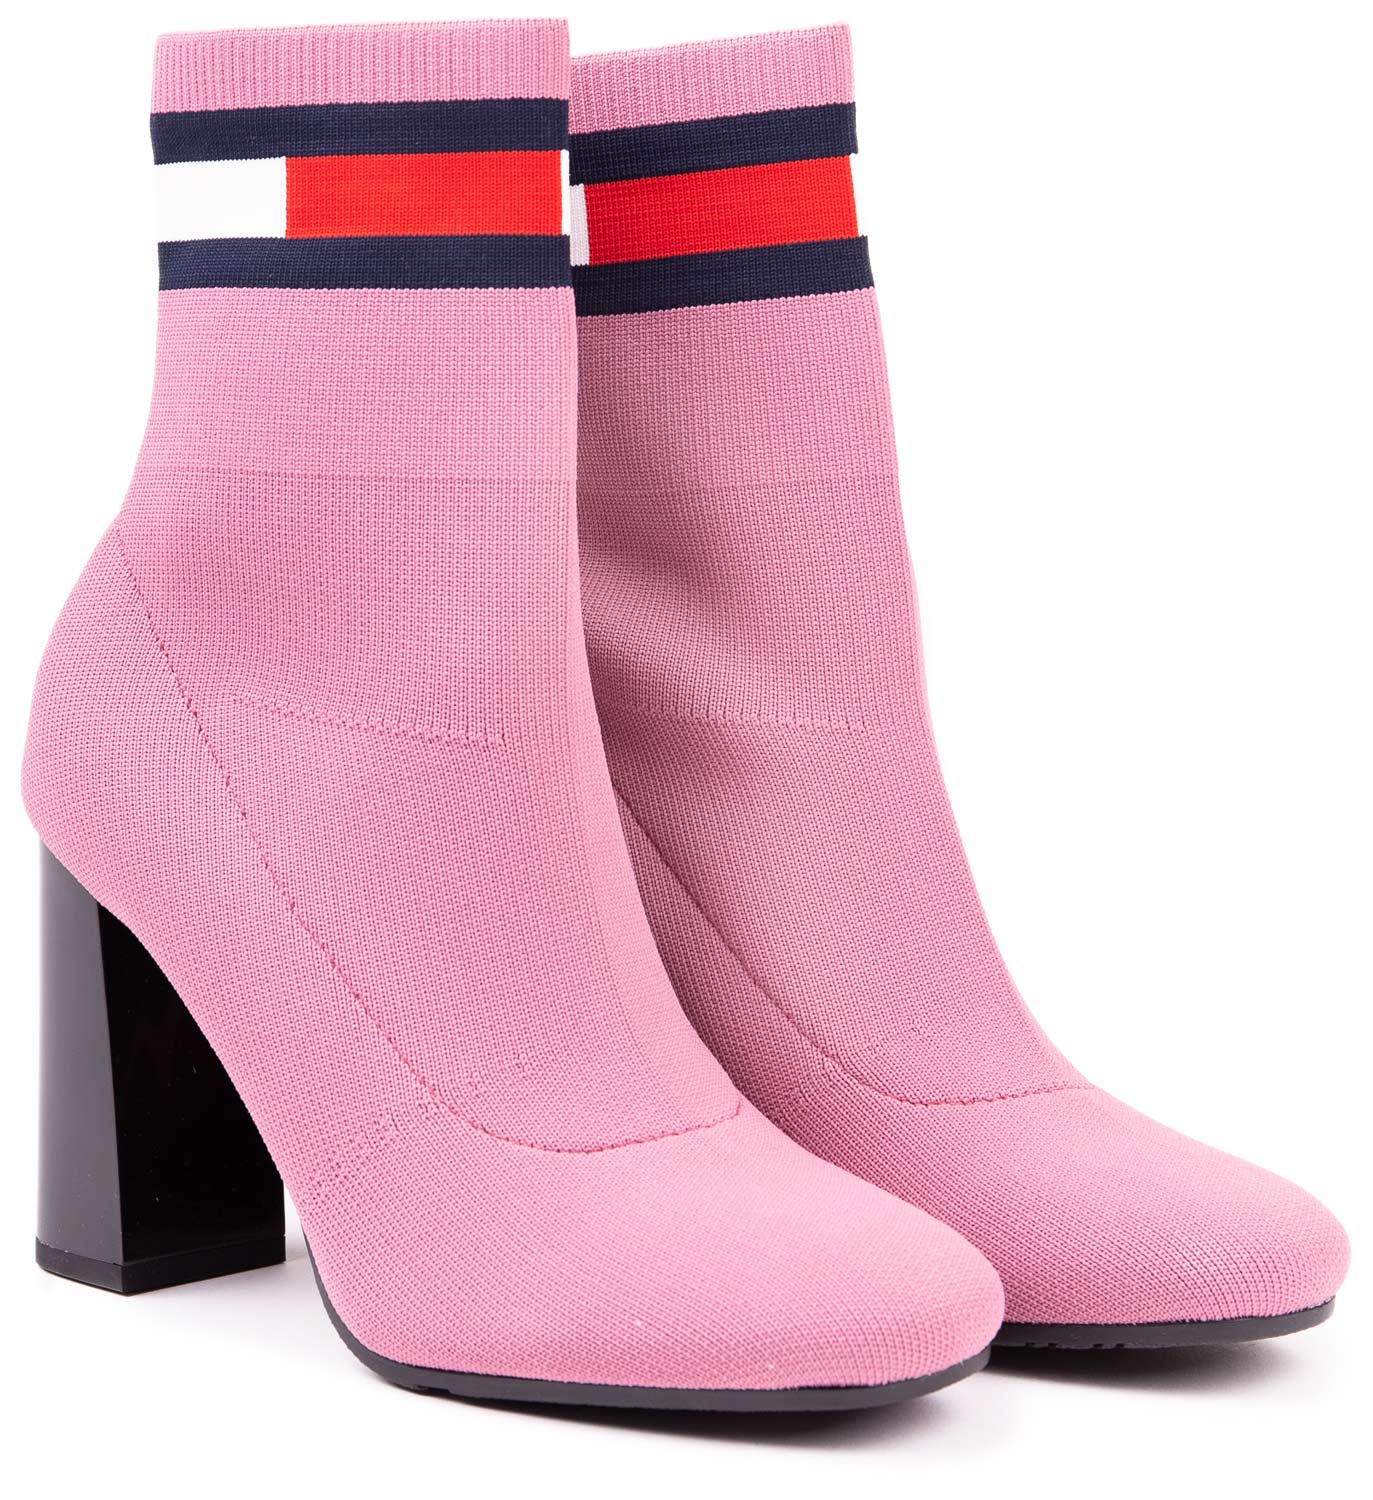 Tommy Hilfiger rosa calzino con tacco scarpe Sock Heeled Boot Heather Rose